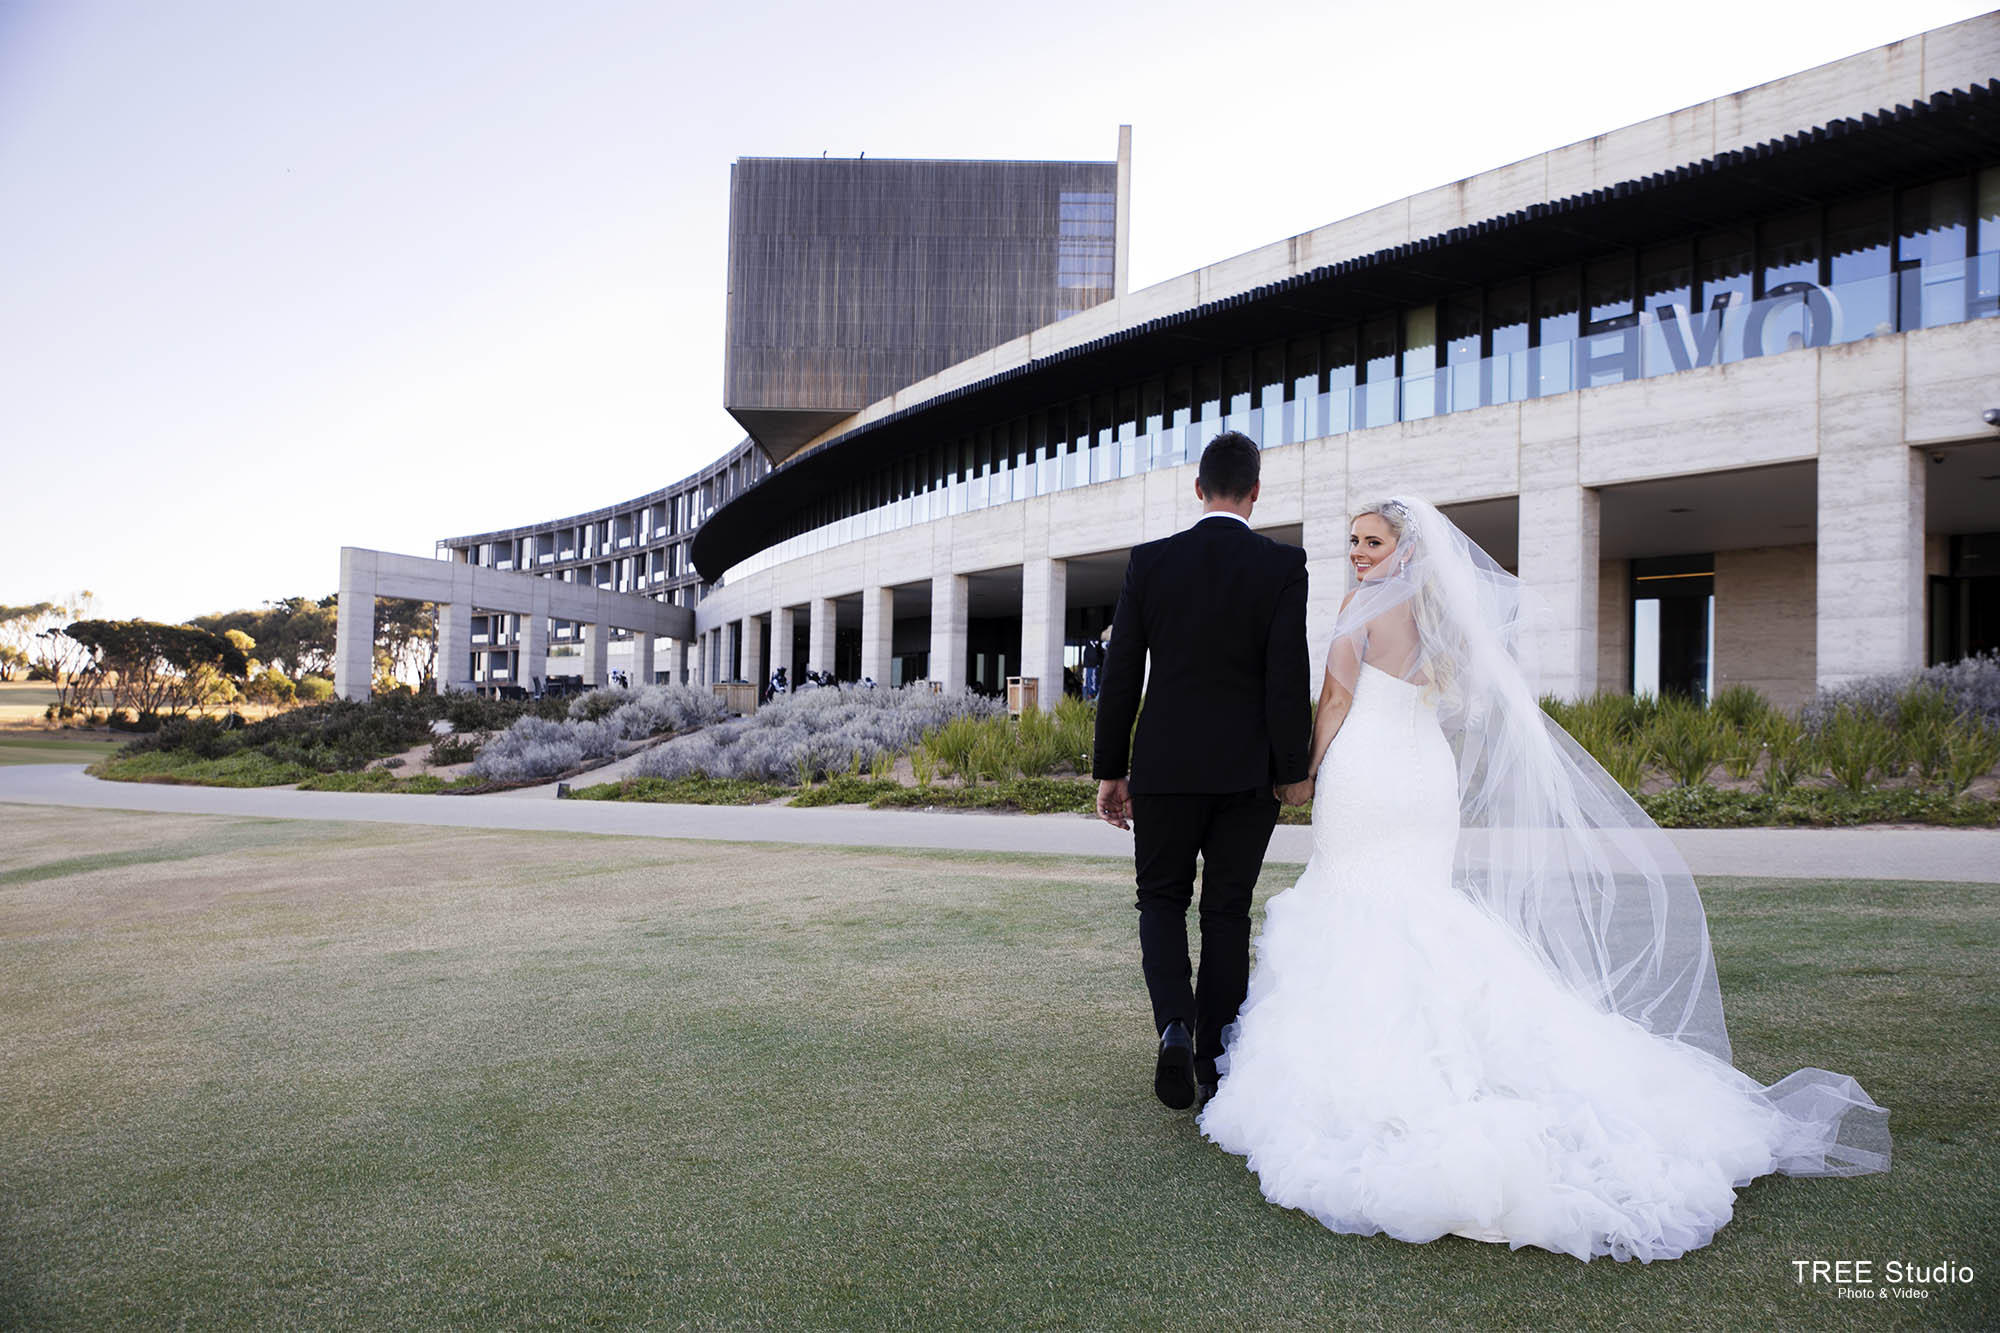 RACV Wedding Photography (25)